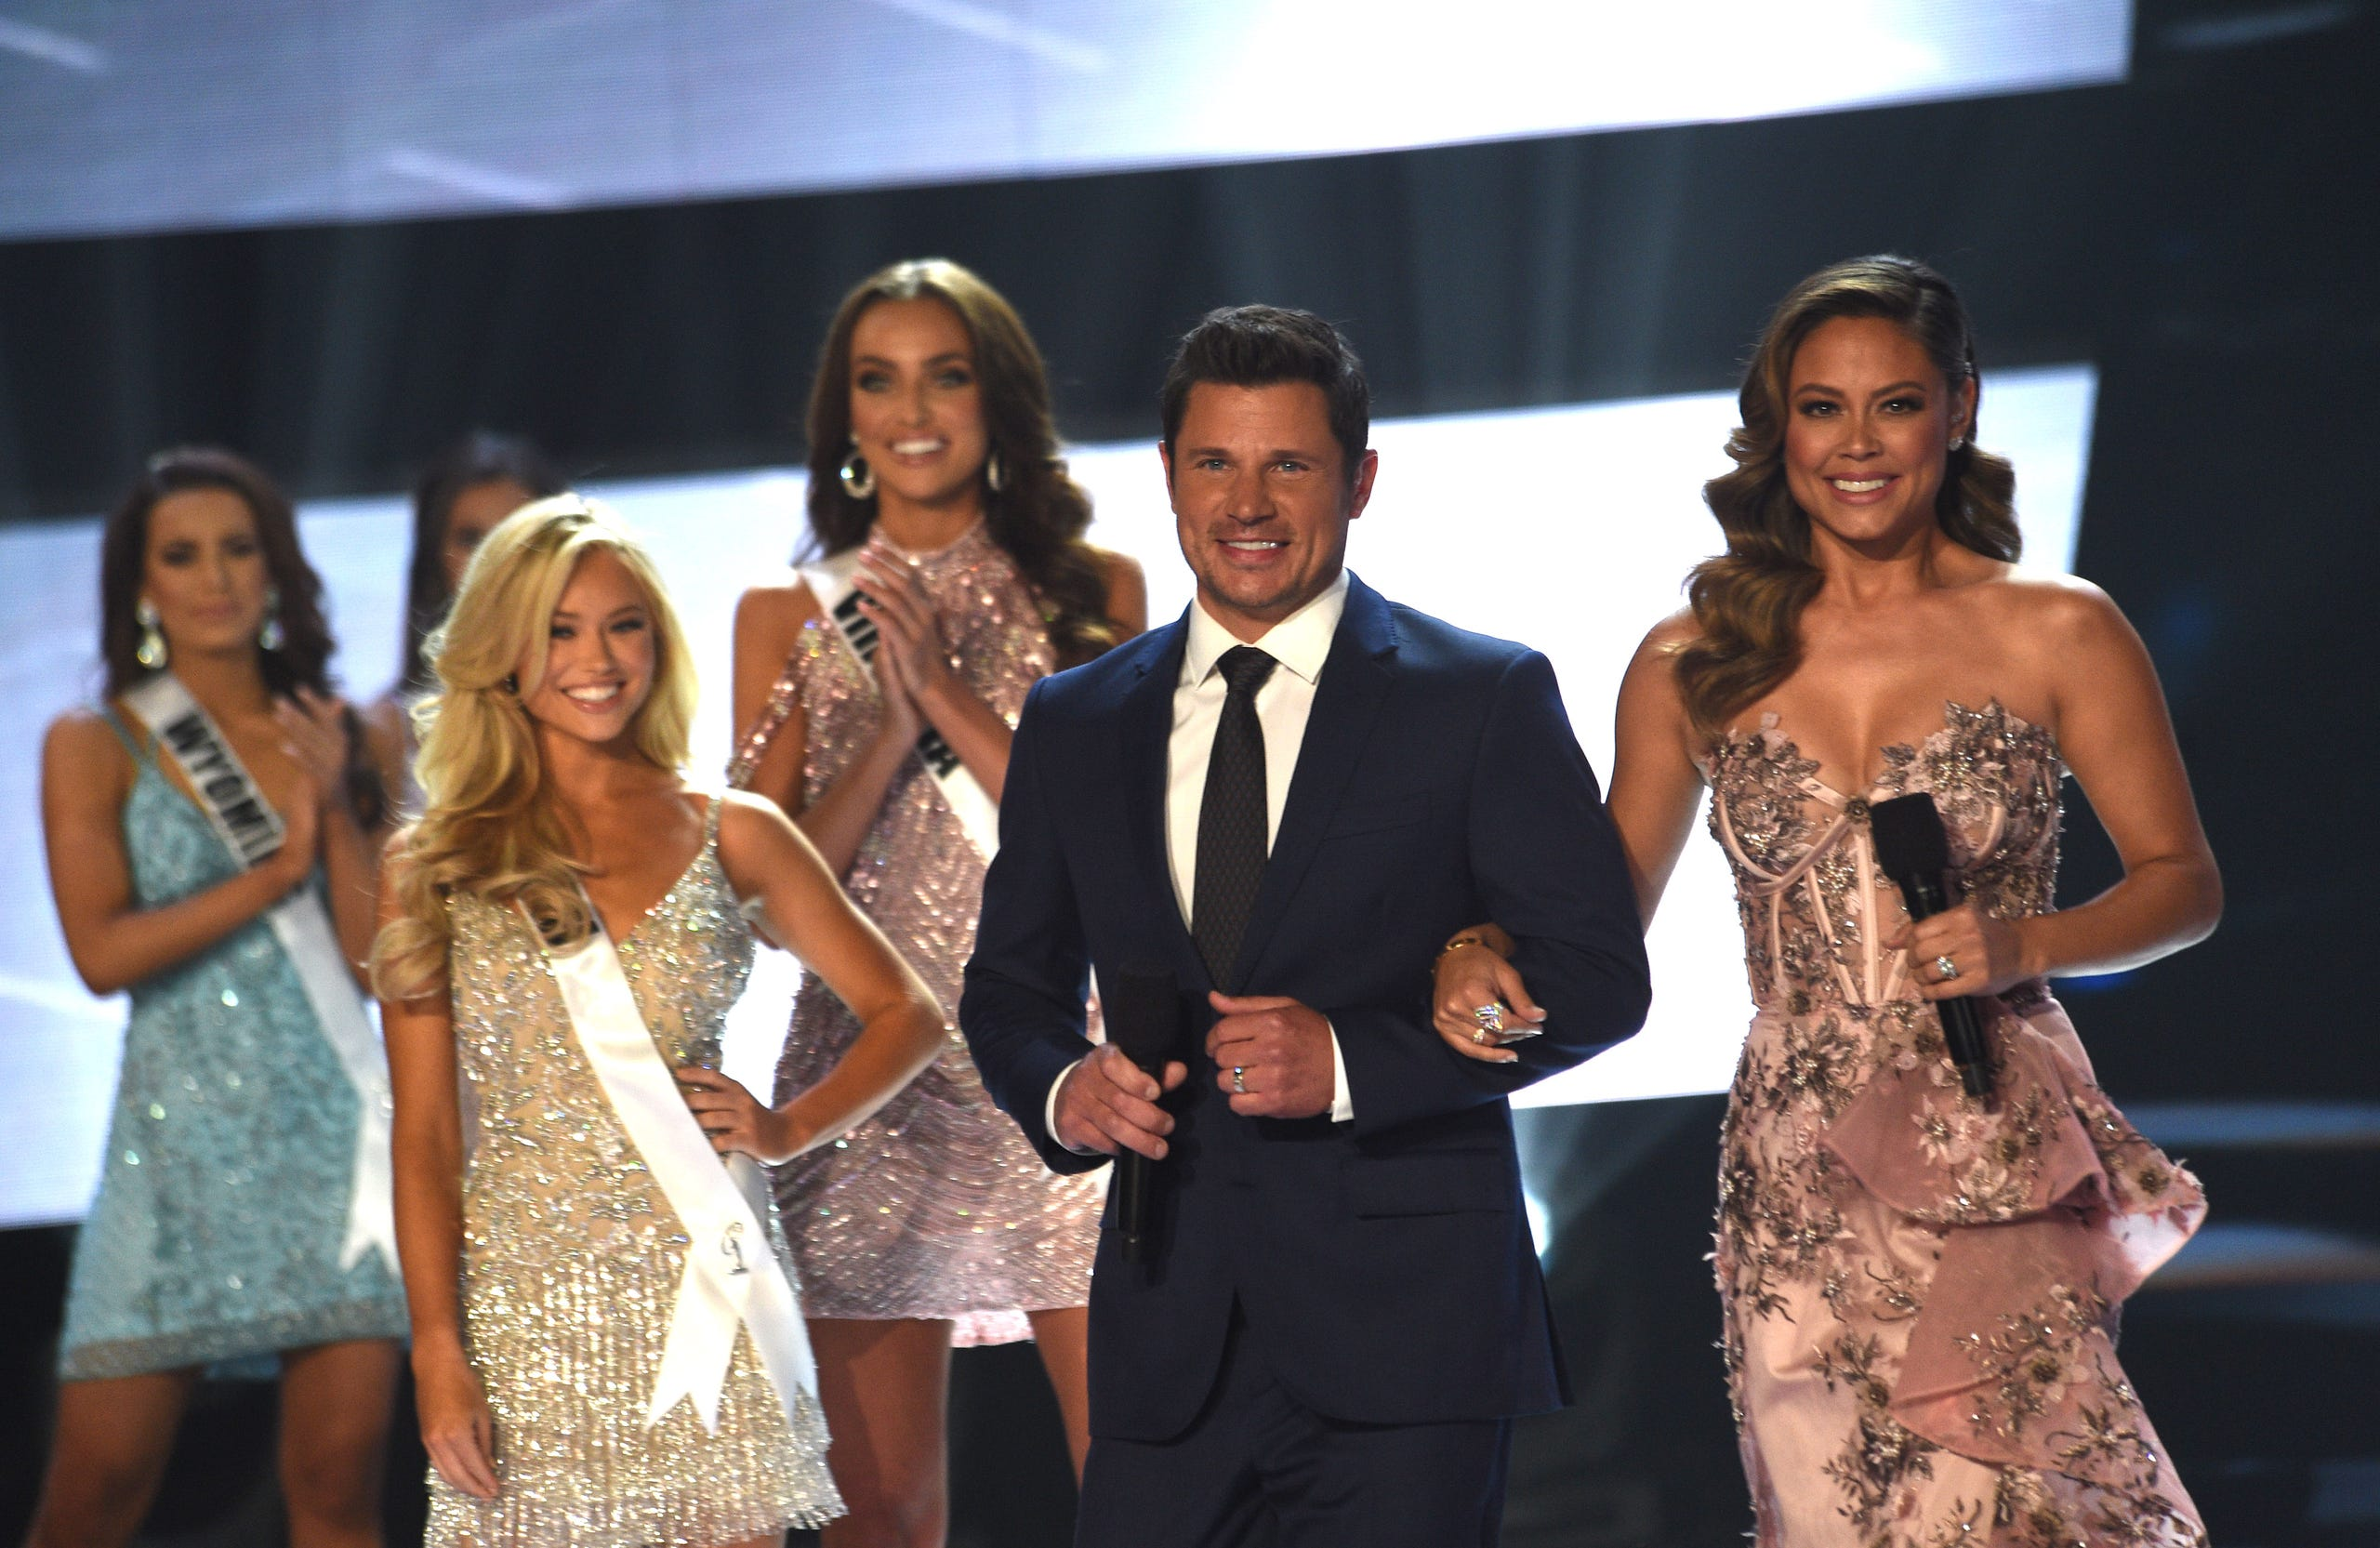 Vanessa and Nick Lachey co-host Miss USA 2019.